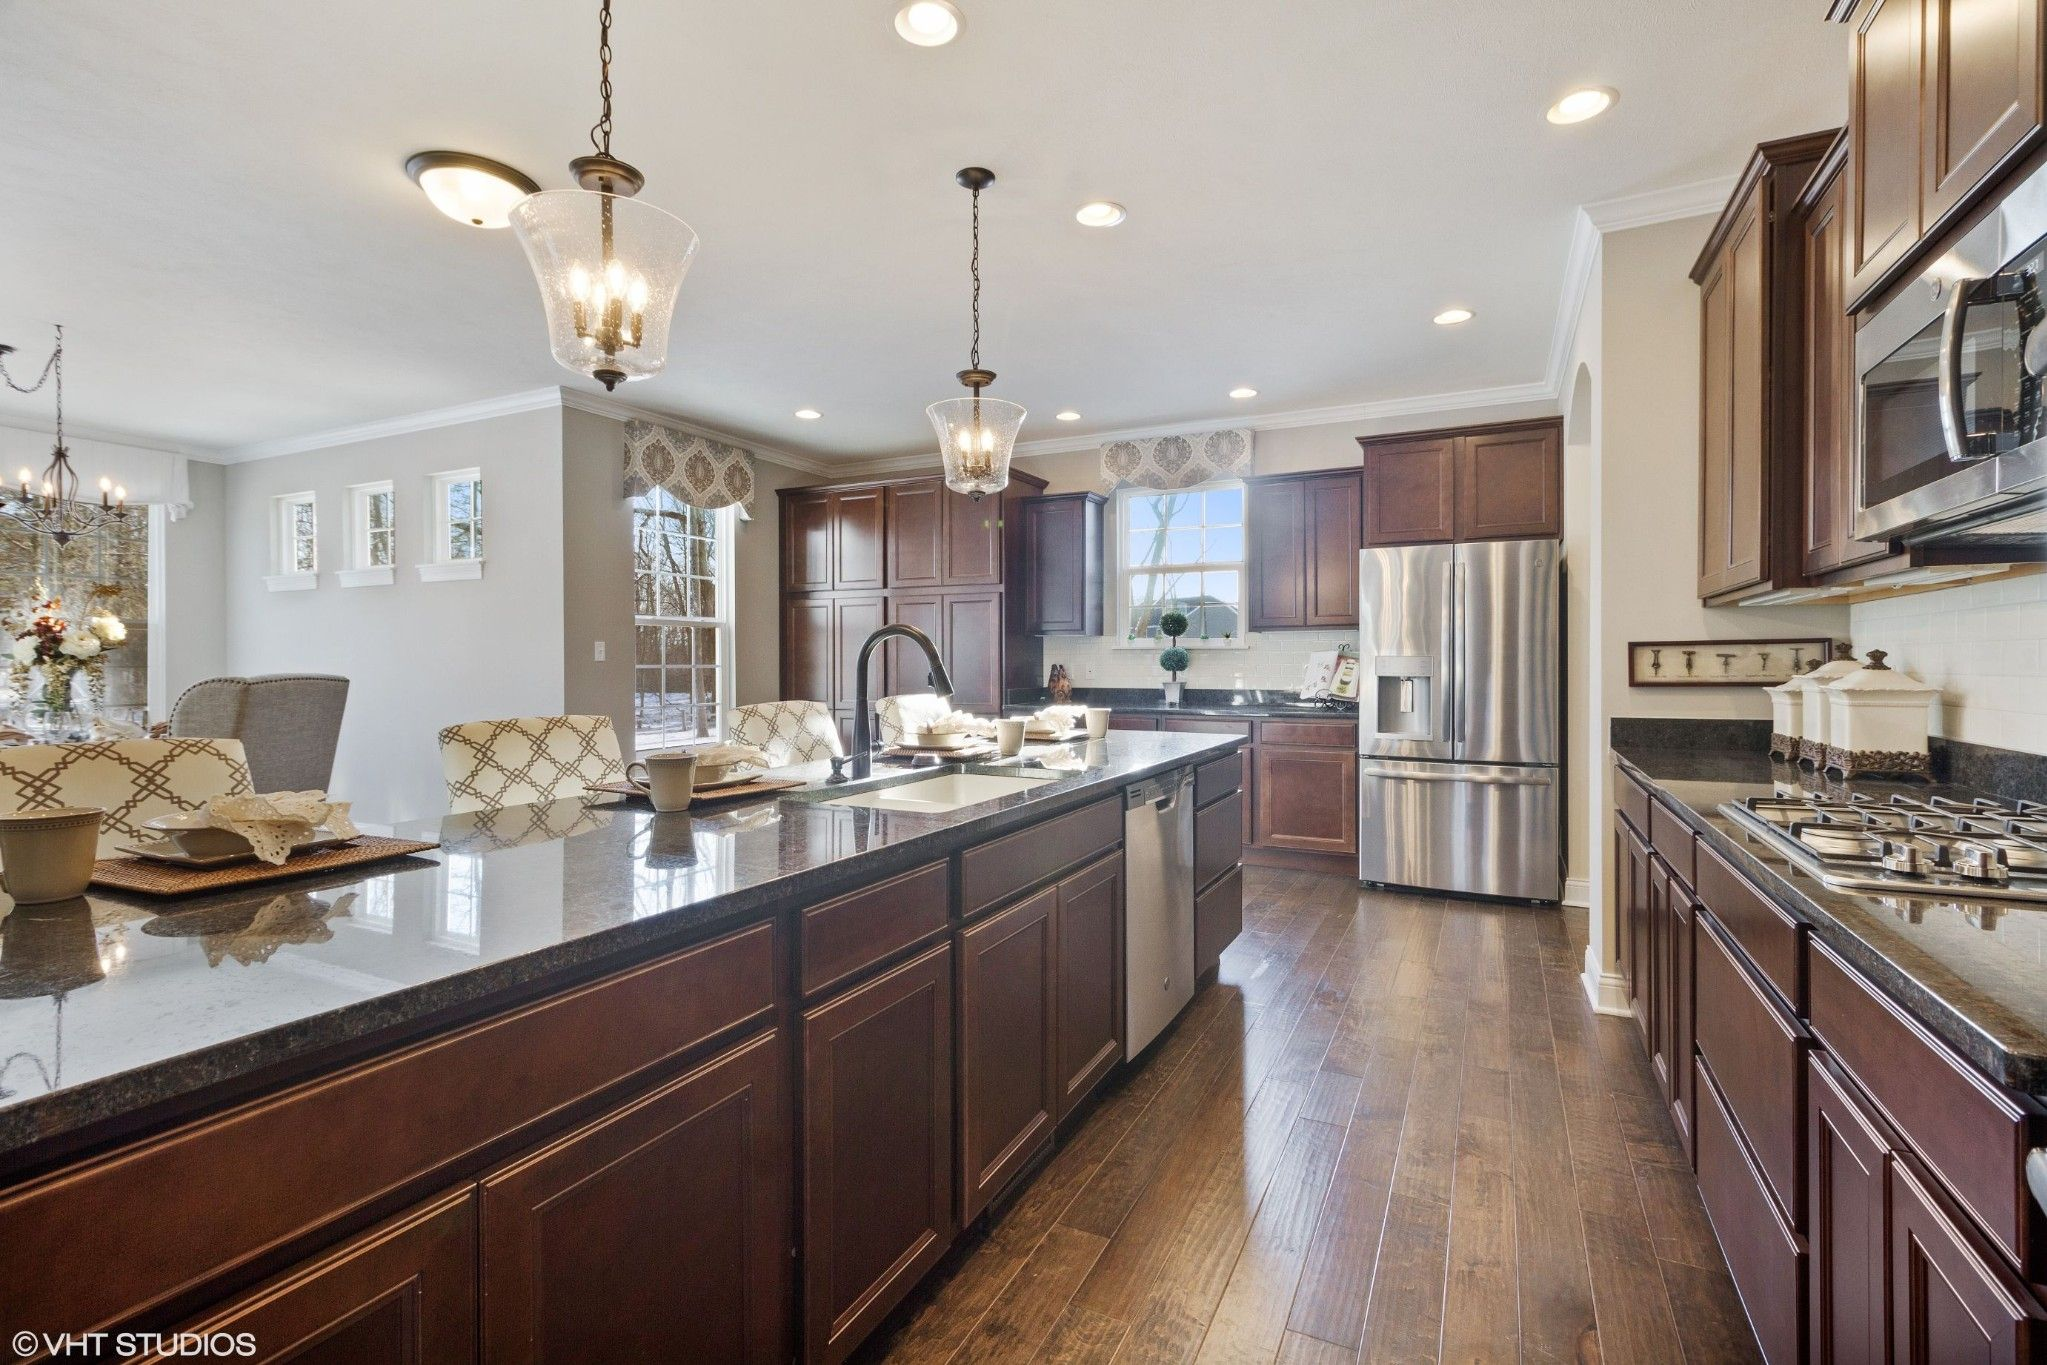 Kitchen featured in the Cordera By Olthof Homes in Gary, IN